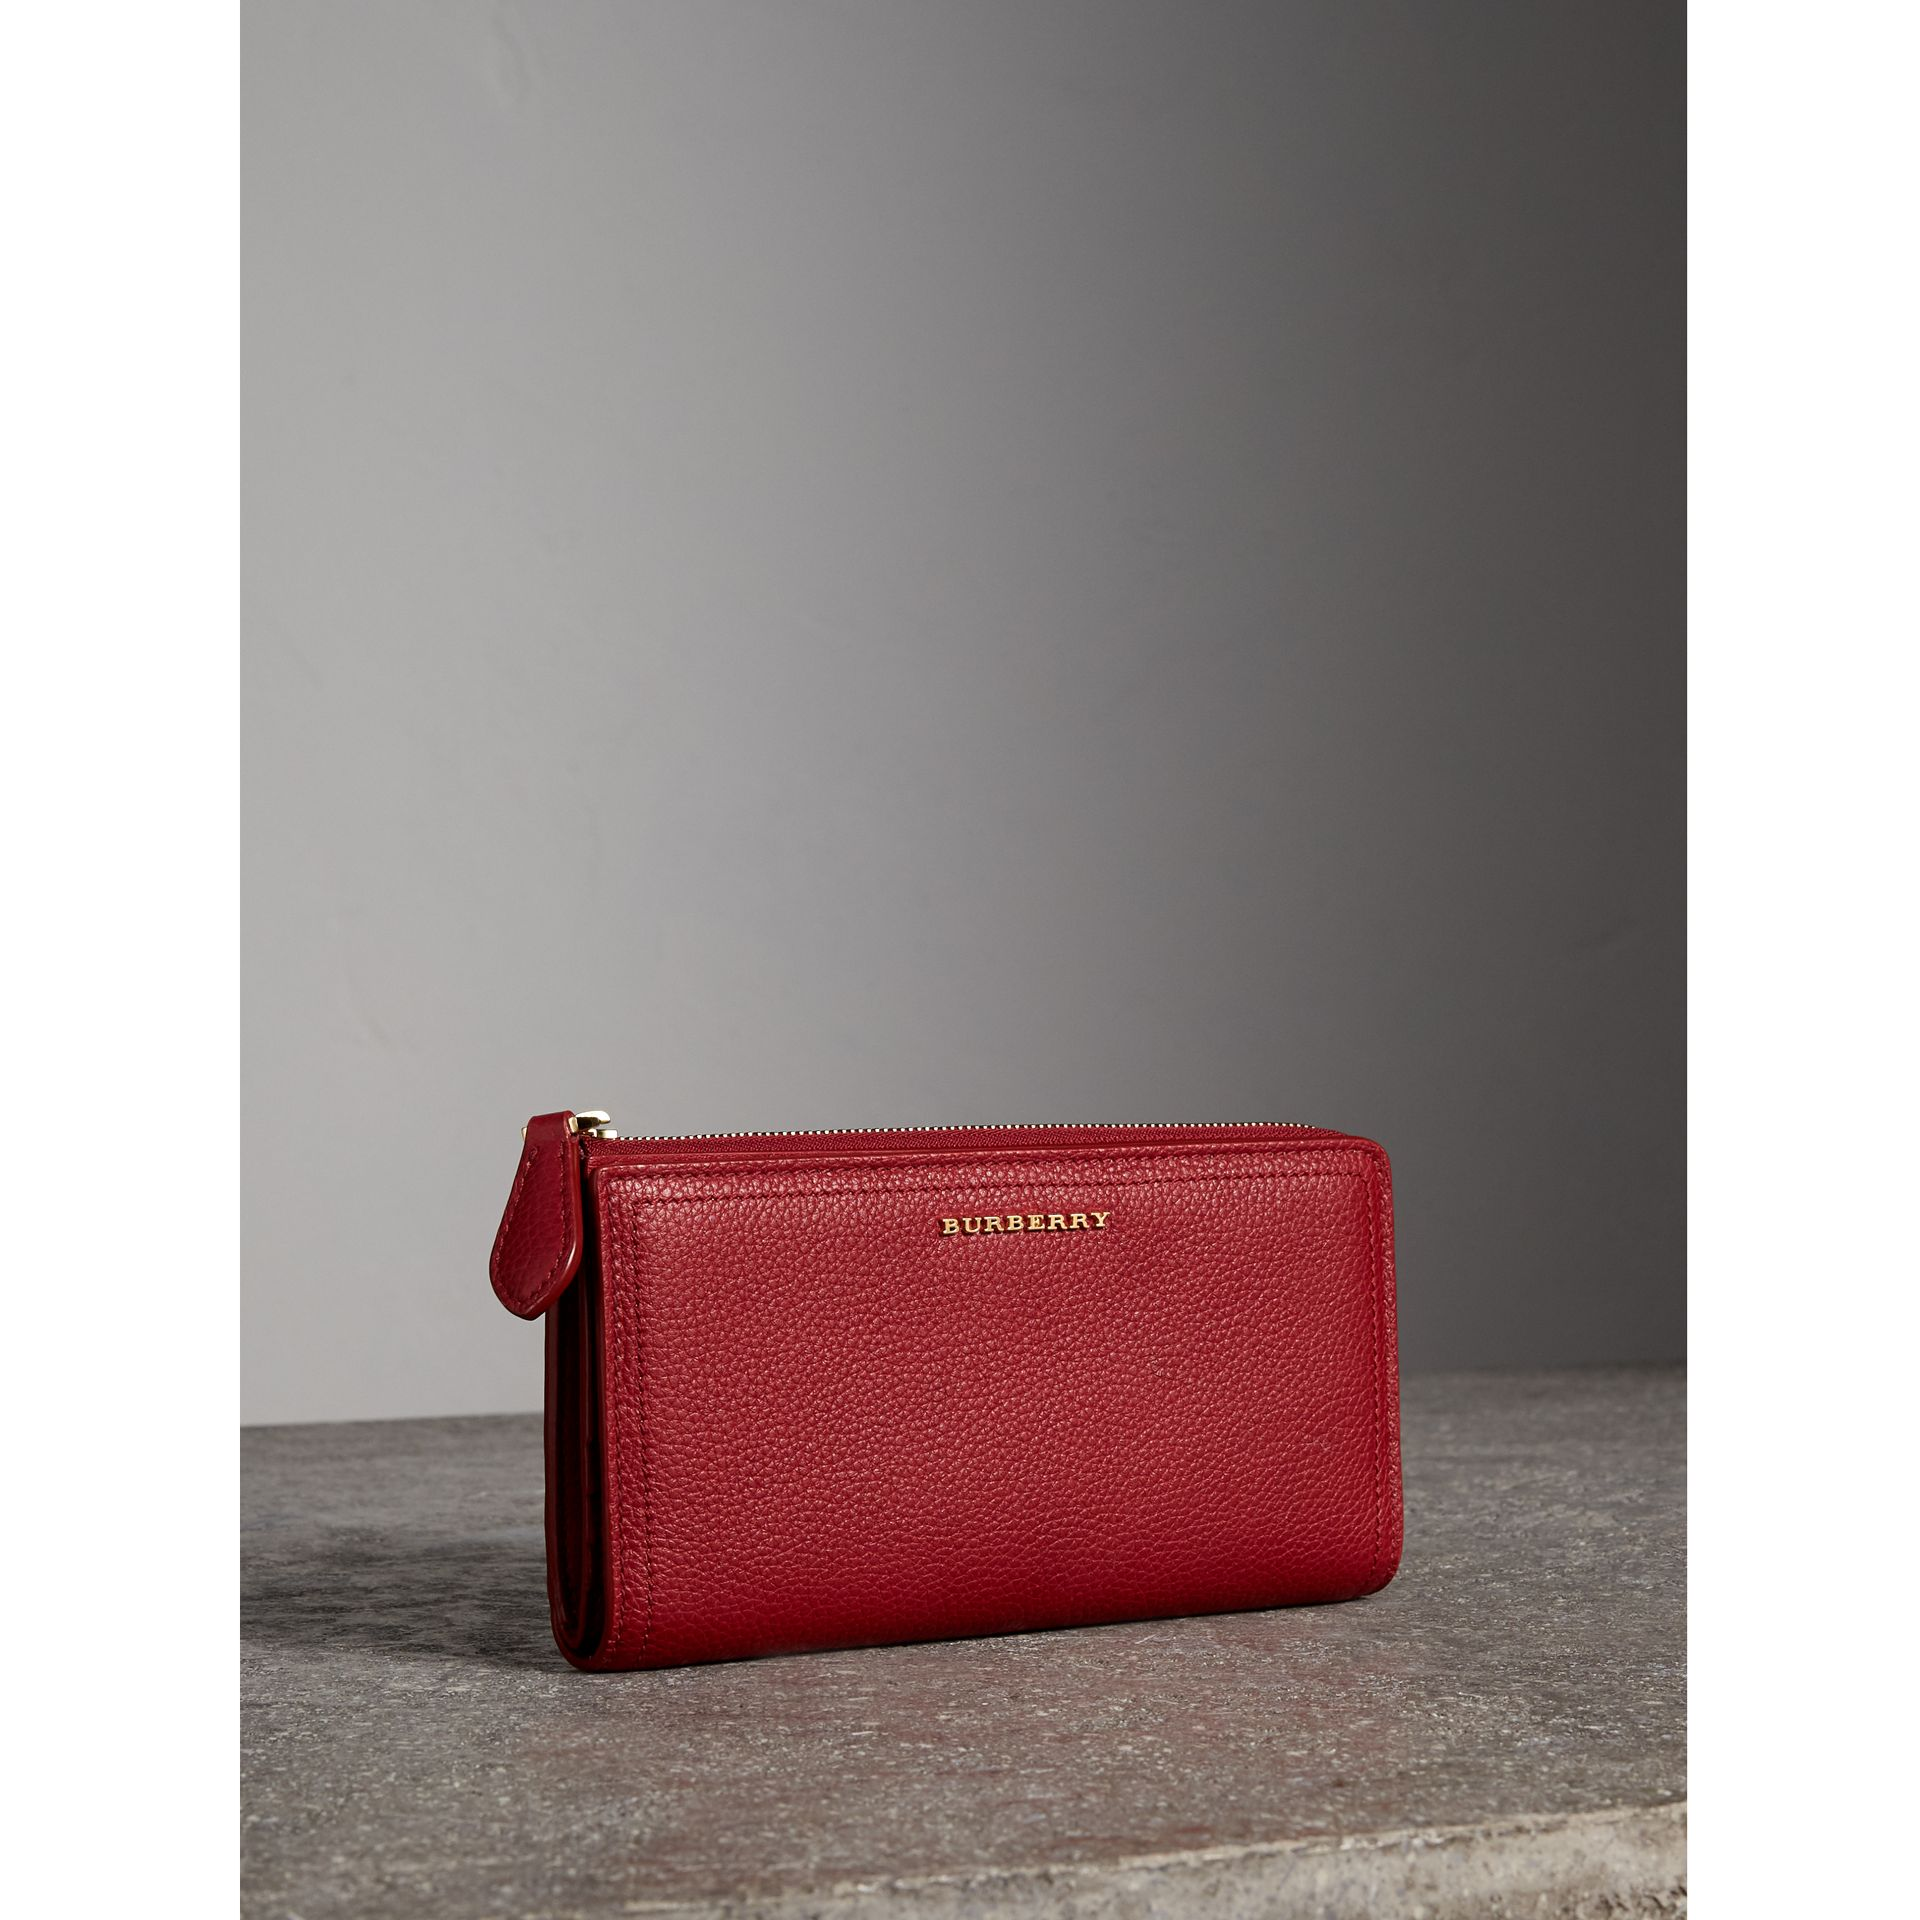 Grainy Leather Ziparound Wallet in Parade Red - Women | Burberry - gallery image 1